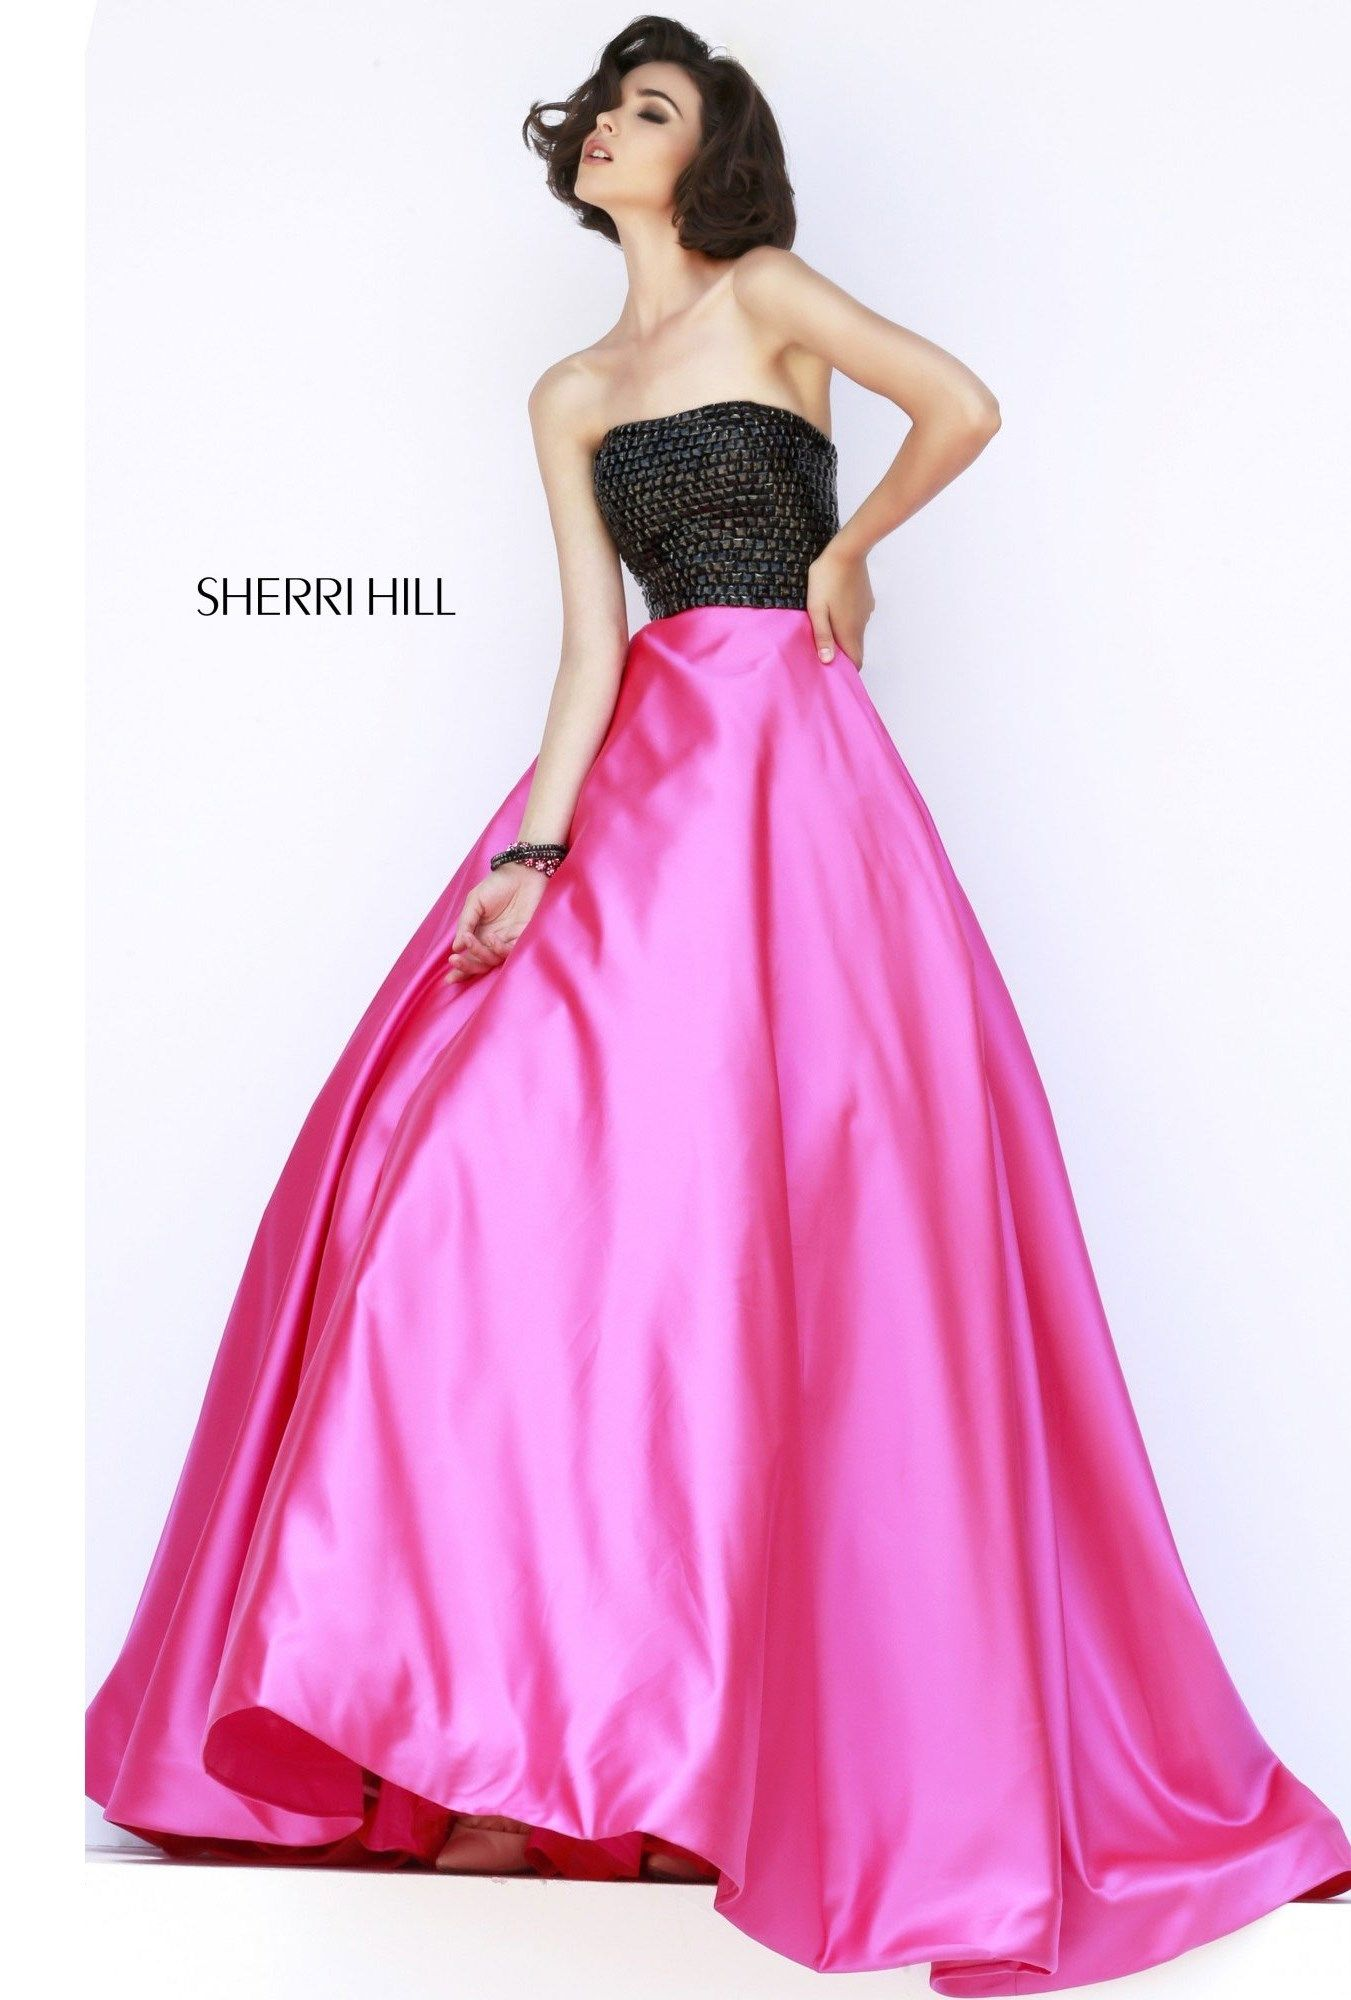 Blackfuschia bridesmaid dress made by the most amazing fashion blackfuschia bridesmaid dress made by the most amazing fashion designererri ombrellifo Gallery